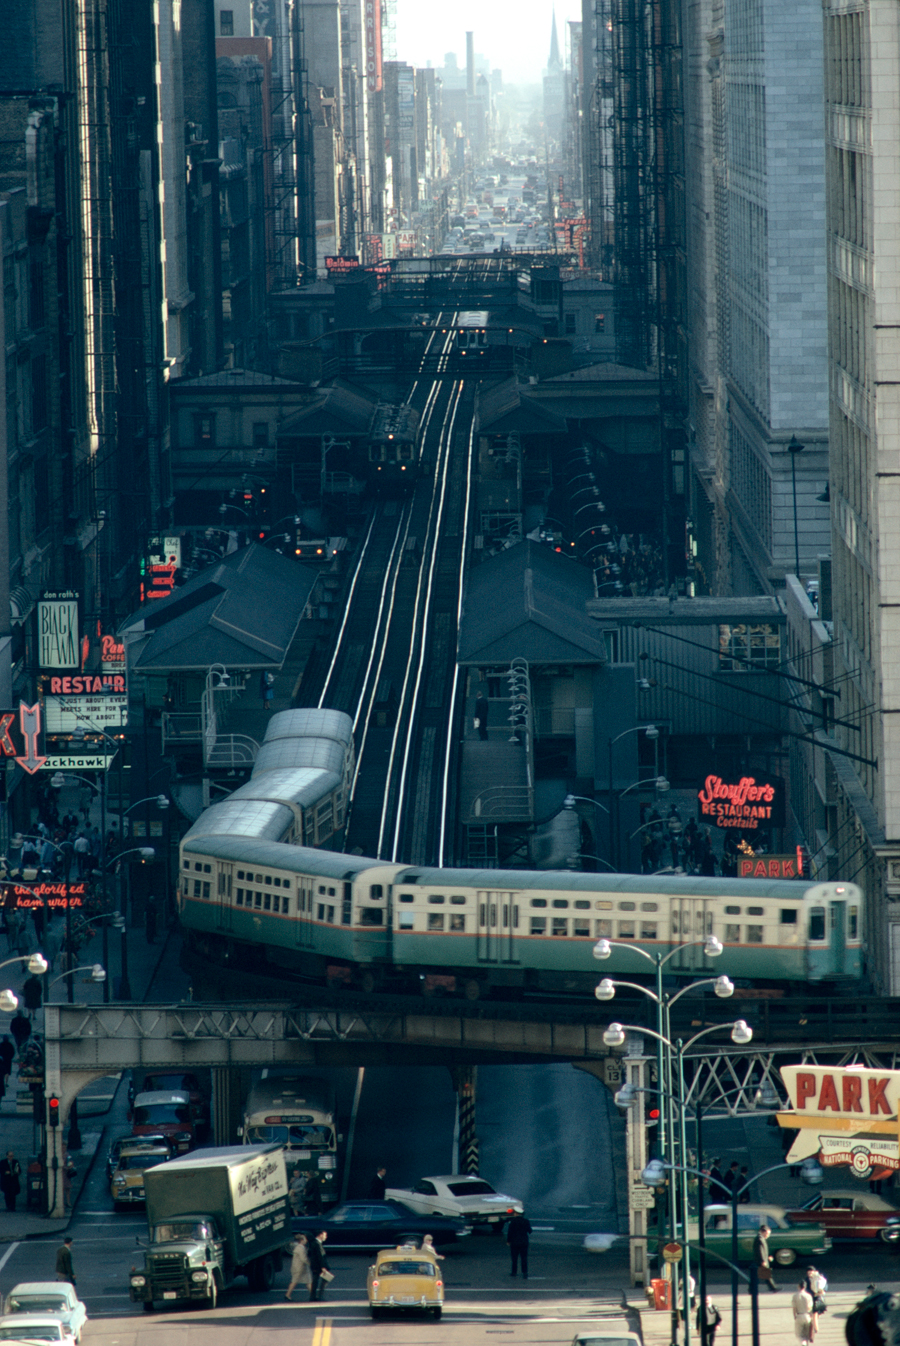 natgeofound :     A railway encircles thirty-five blocks of shops, offices, and hotels in Chicago, June 1967. Photograph by James L. Stanfield, National Geographic